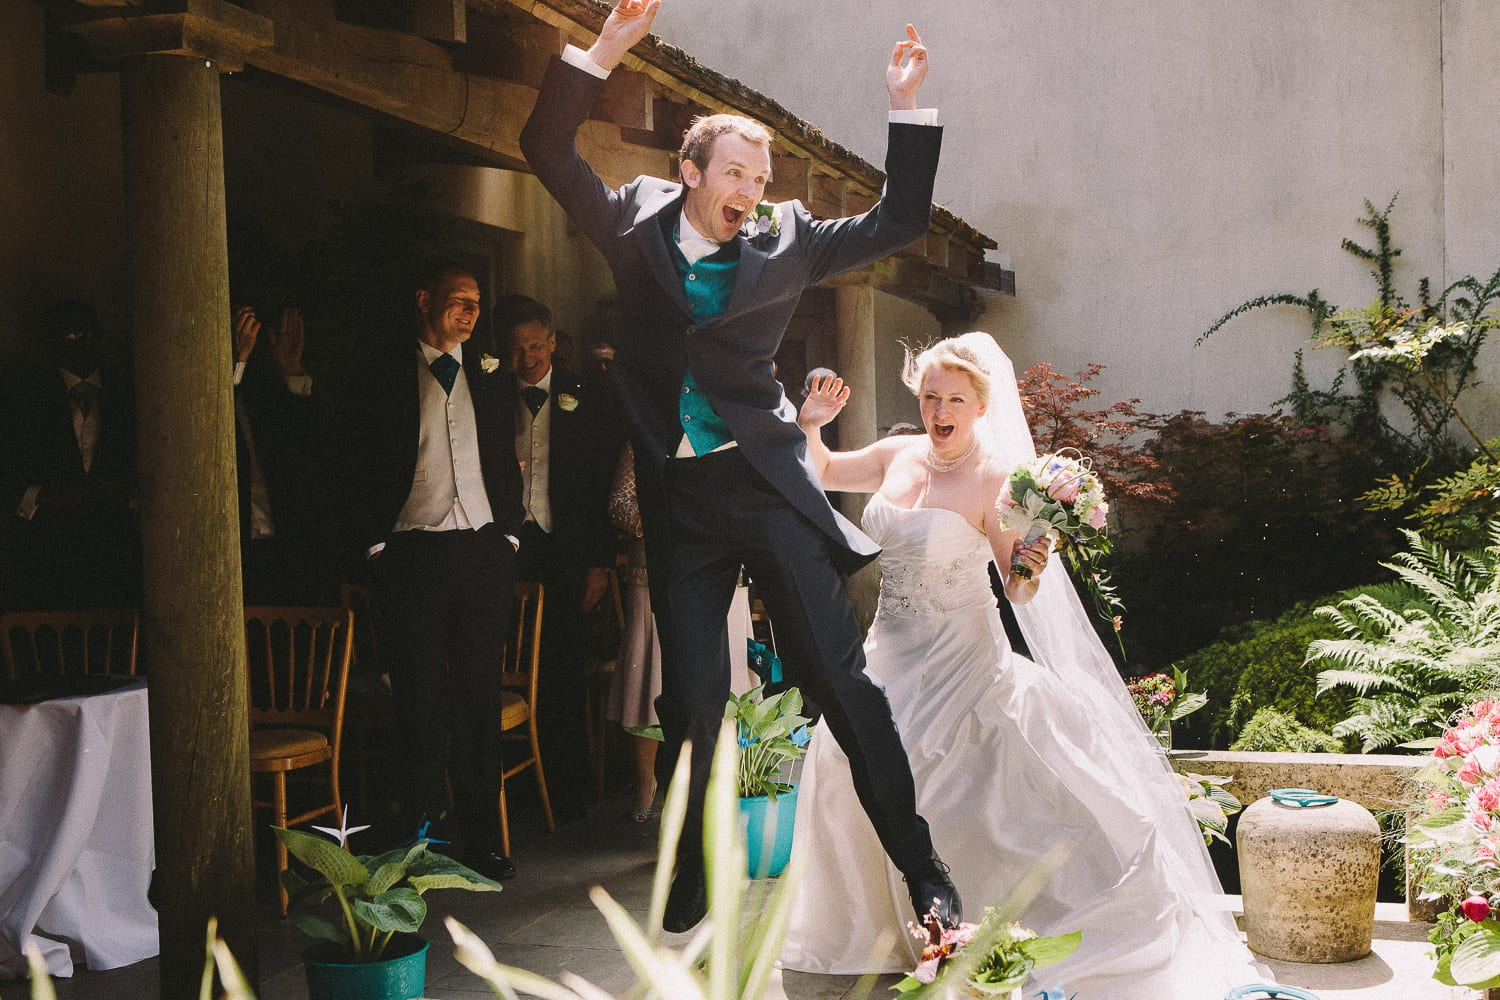 Newly weds jump for joy